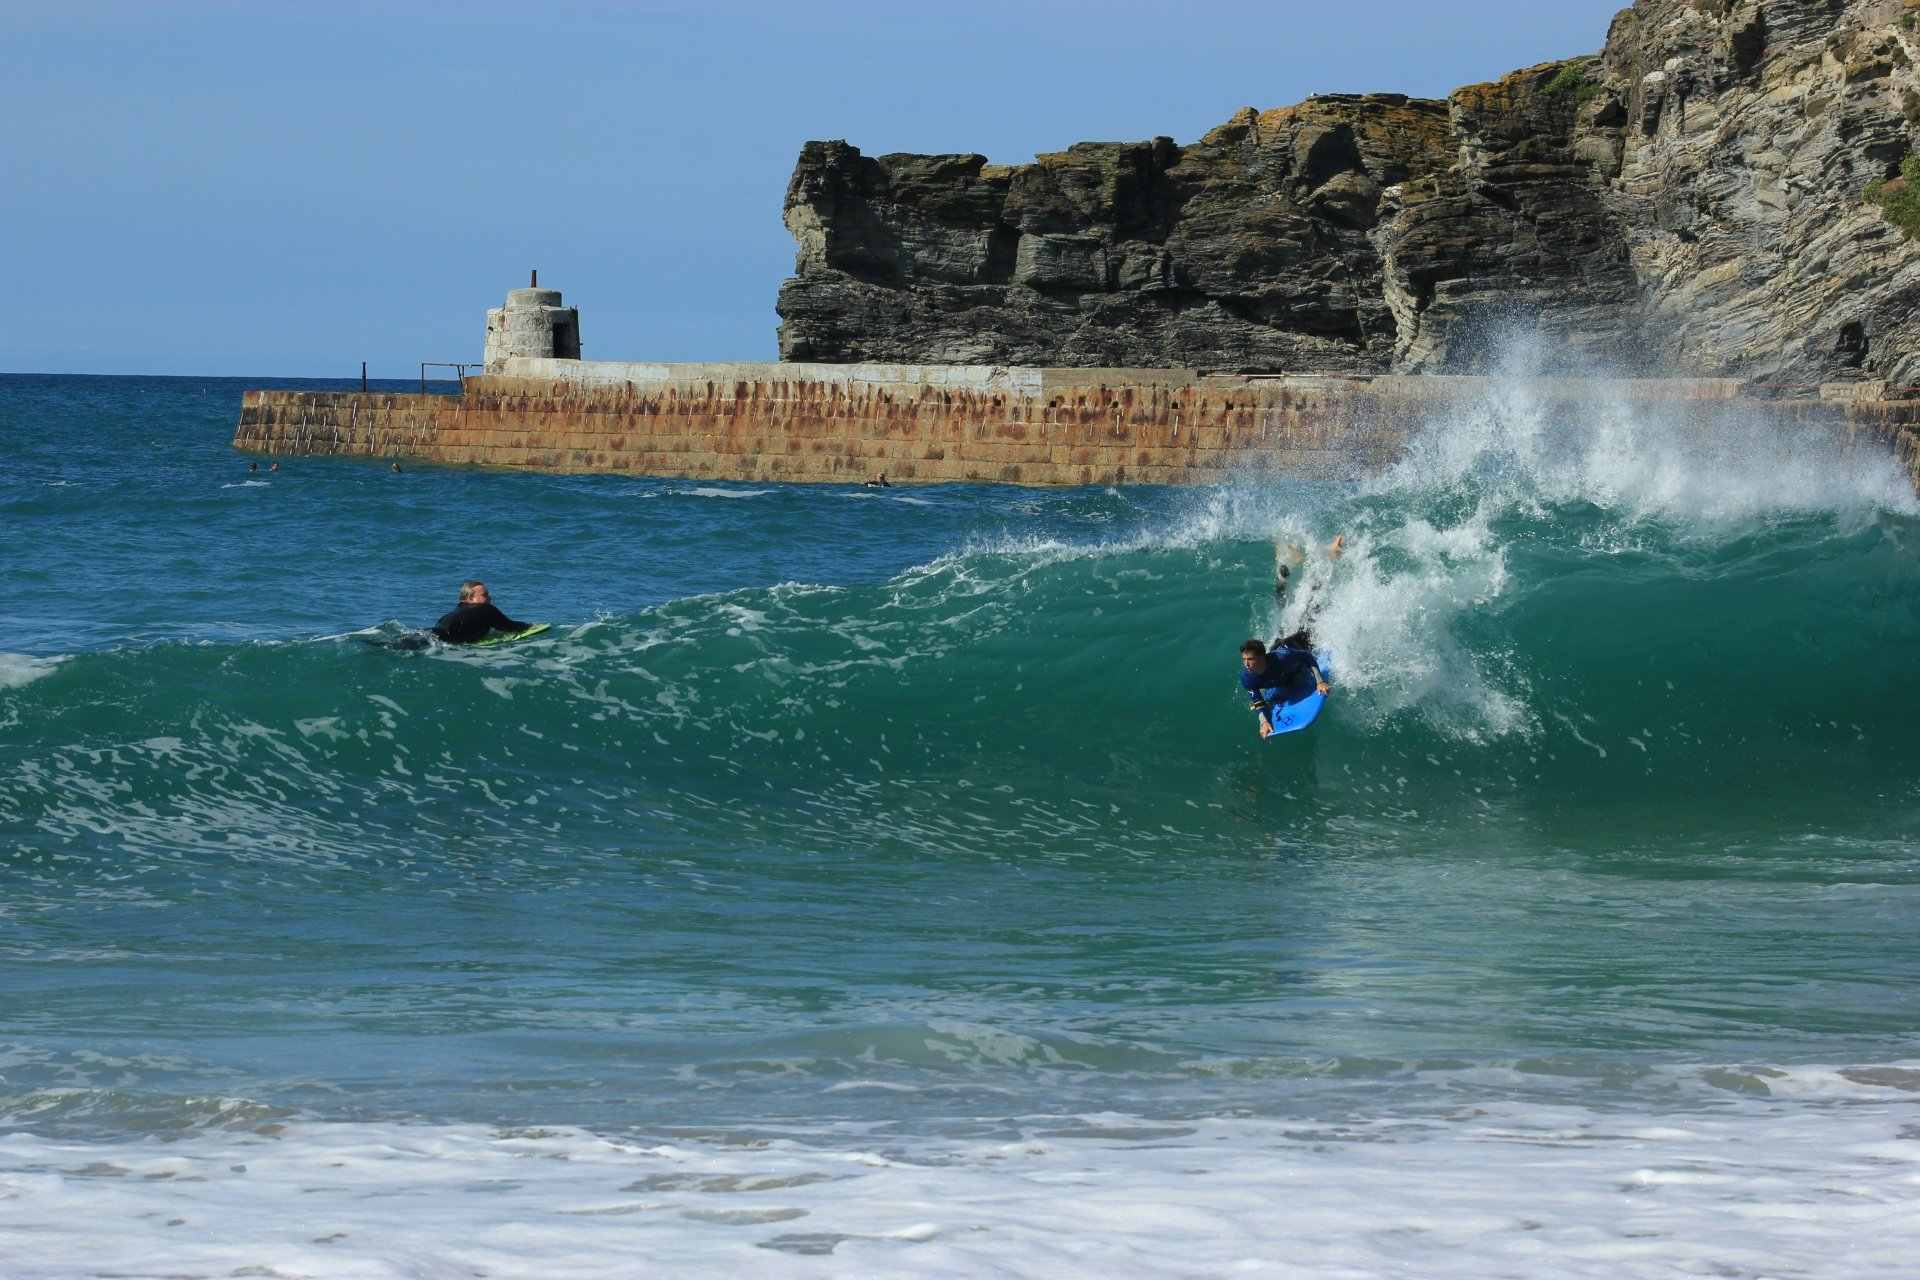 Lukasz Kowalski's photo of Portreath - Beach